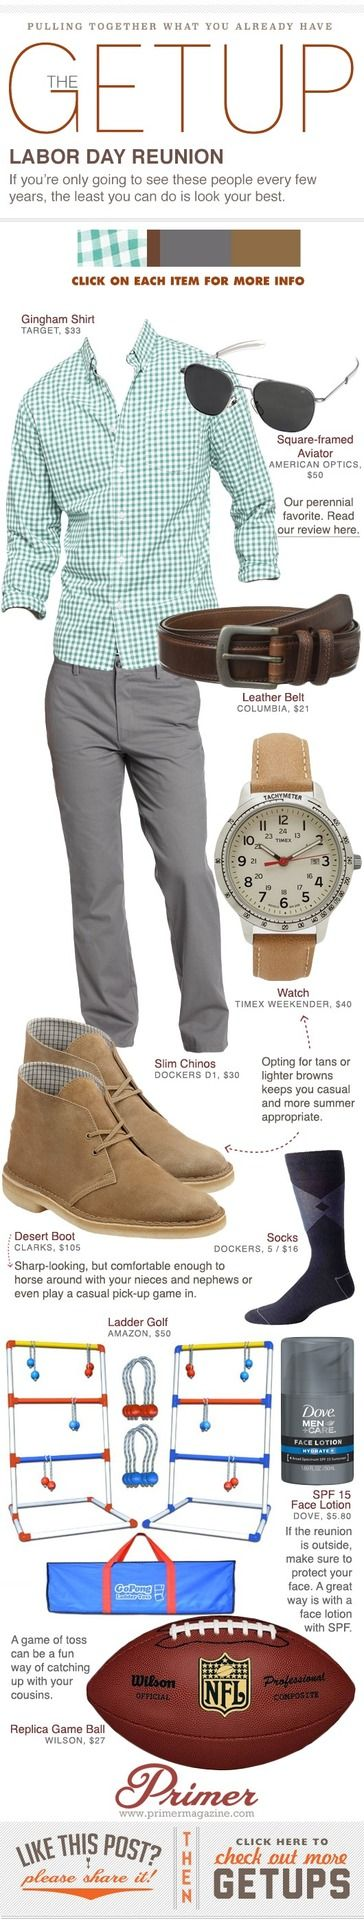 Men's Fashion - The Getup: Labor Day Reunion